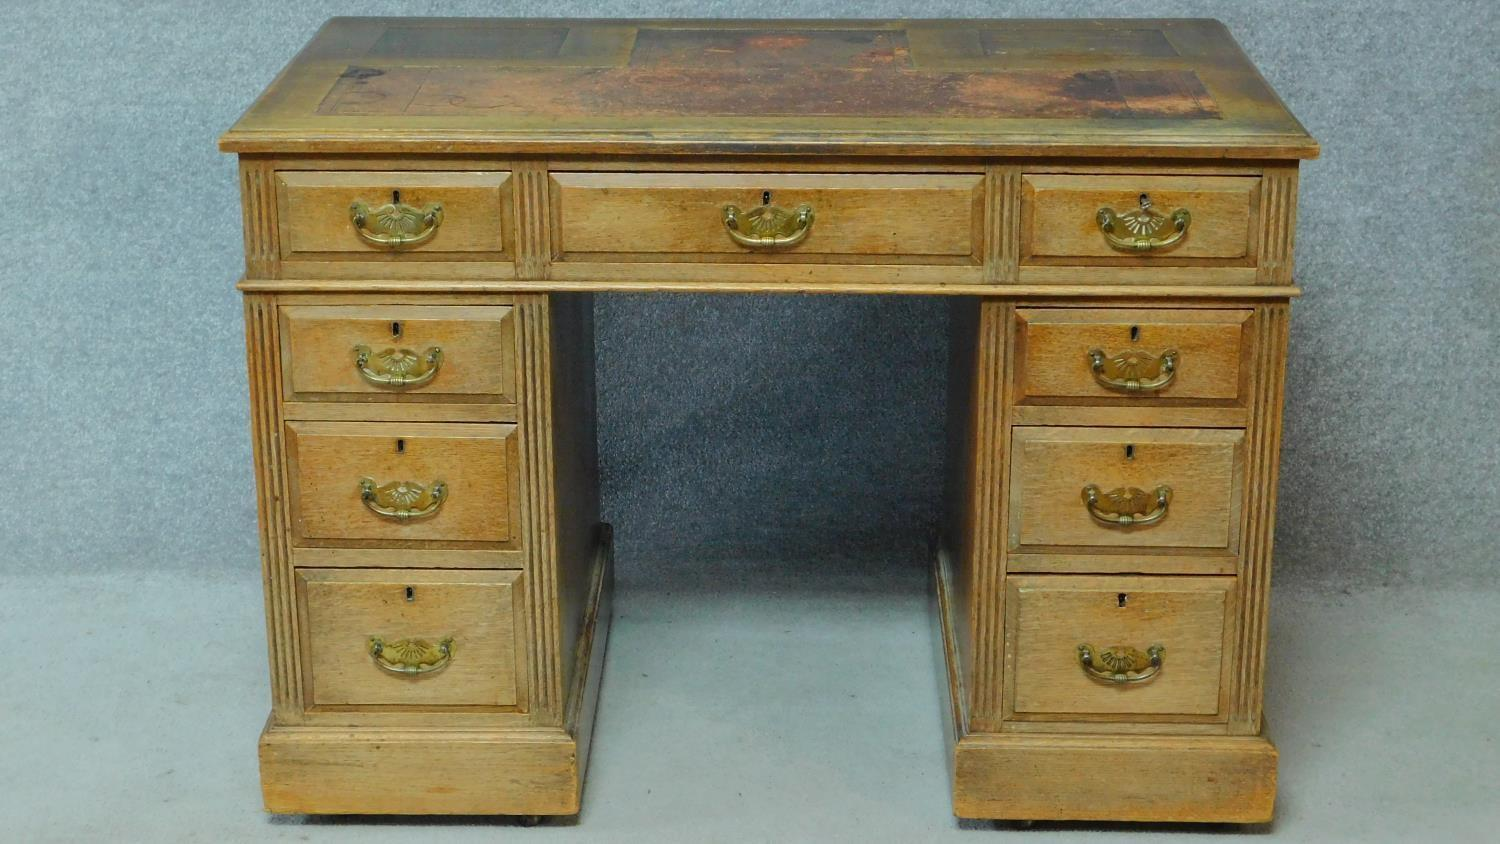 A late 19th century oak pedestal desk with leather inset top above an arrangement of nine drawers - Image 2 of 5